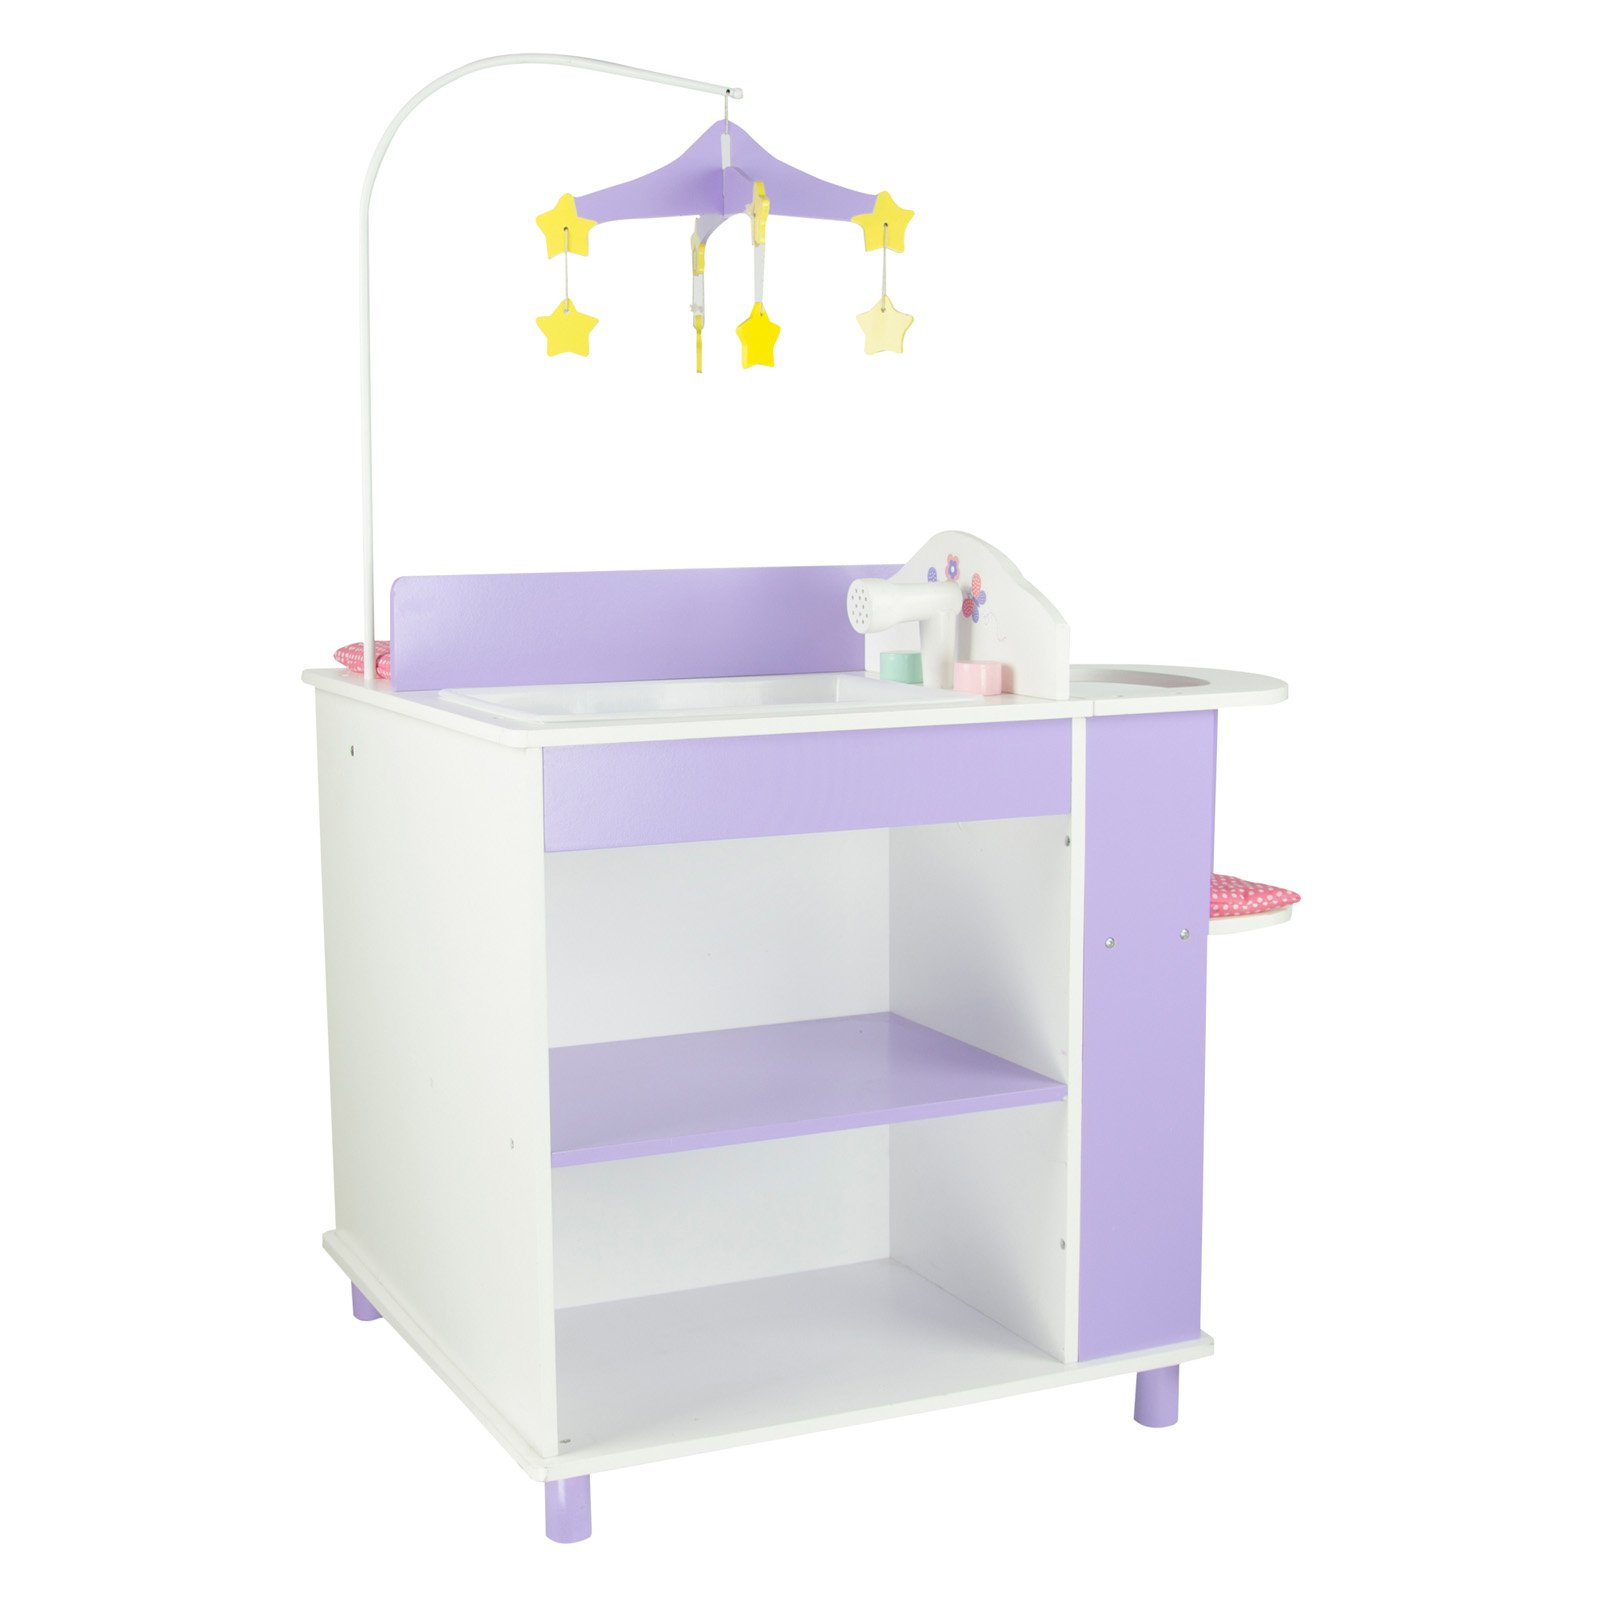 Olivia's Little World Princess Baby Doll Furniture Baby Changing Station with Storage (White) Wooden 18 inch... by Teamson